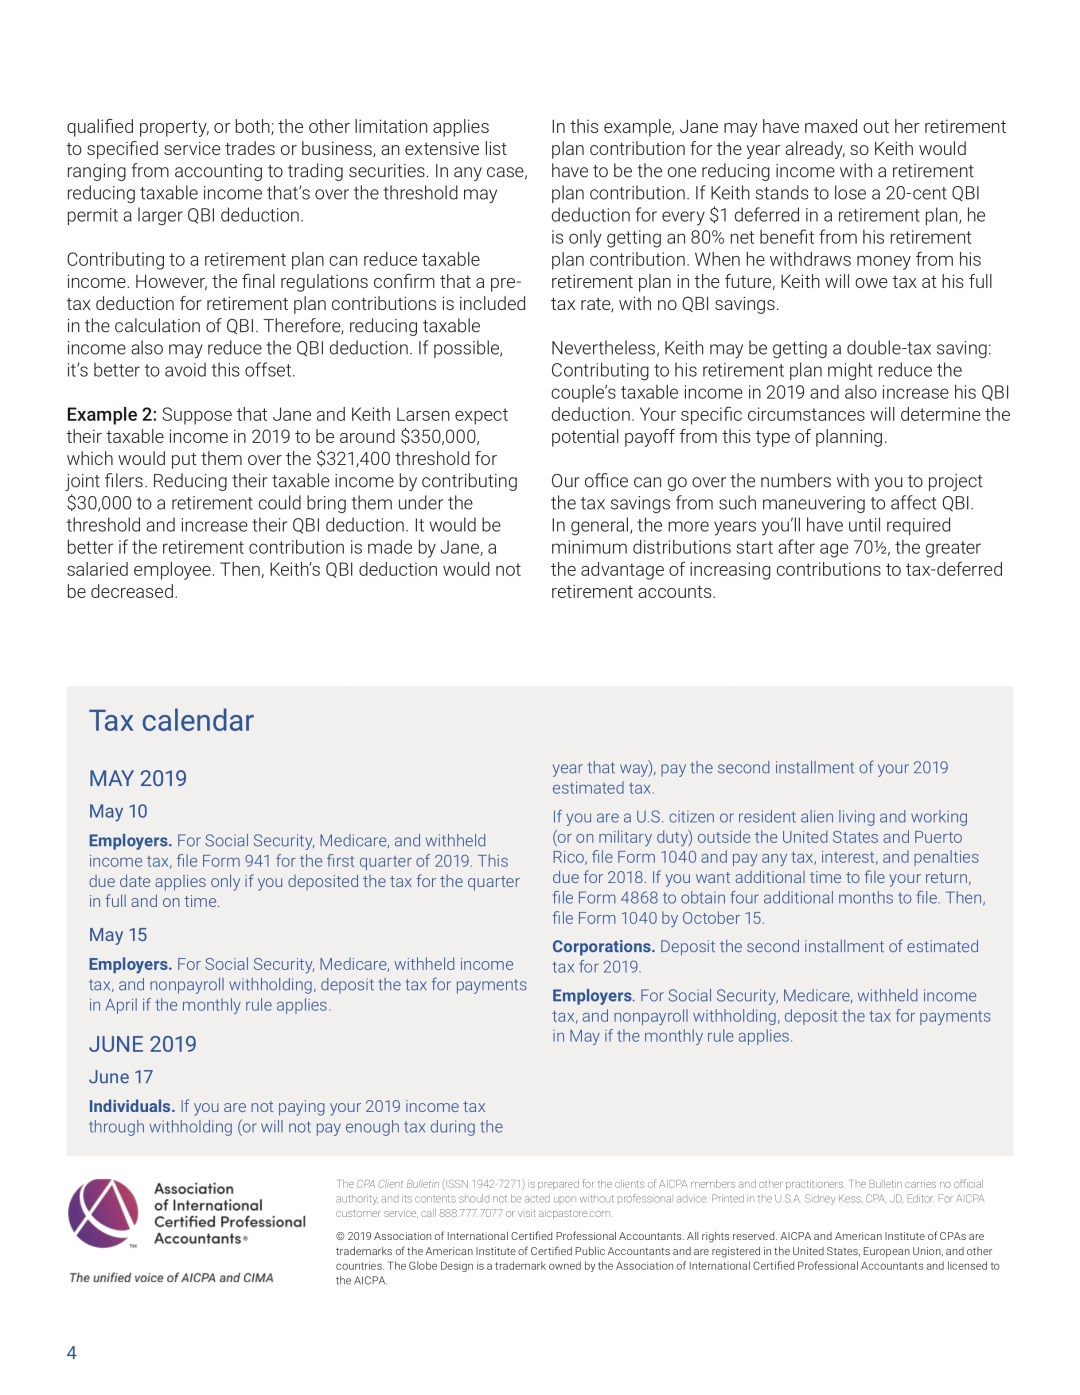 AICPA May Client Bulletin, 0% tax, tax calendar